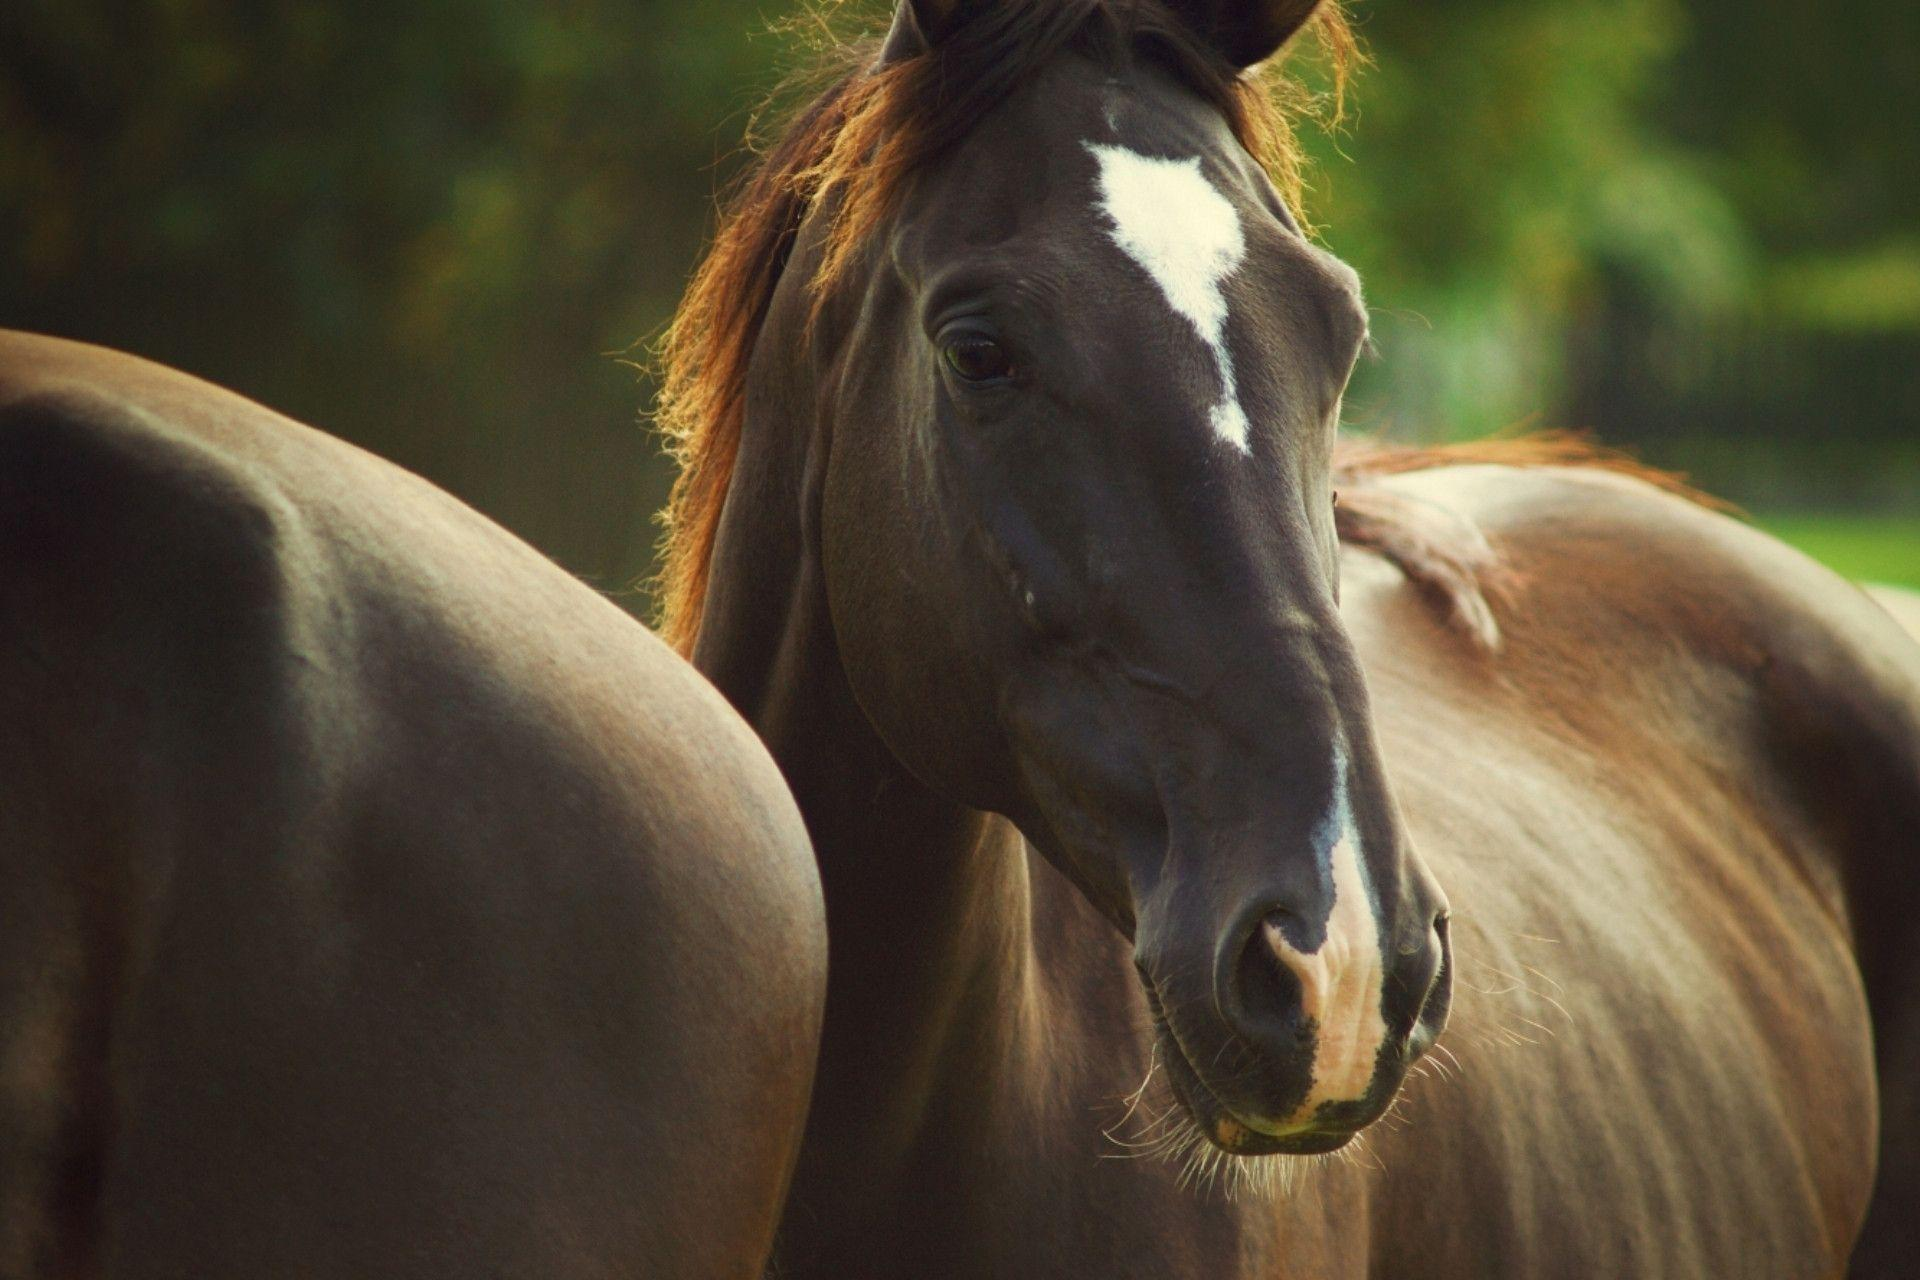 horse cute horses wallpapers animals brown desktop funny coat quality royal monochrome skyscapes related mane spot portrait widescreen wall wallpapersafari